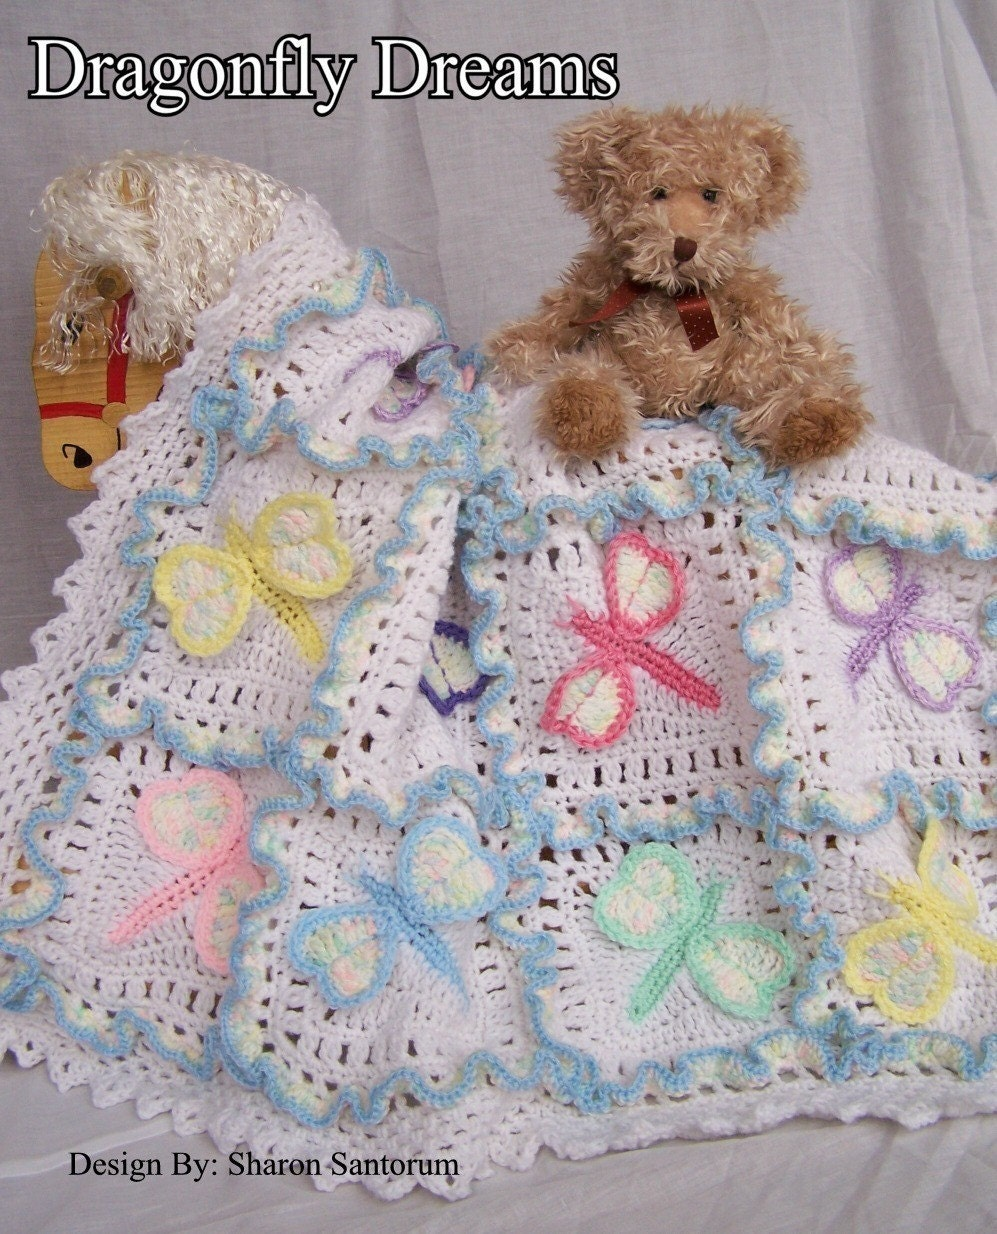 Butterfly Crochet Afghan Pattern Free : EASY CROCHETED BABY AFGHAN PATTERN ? CROCHET PATTERNS